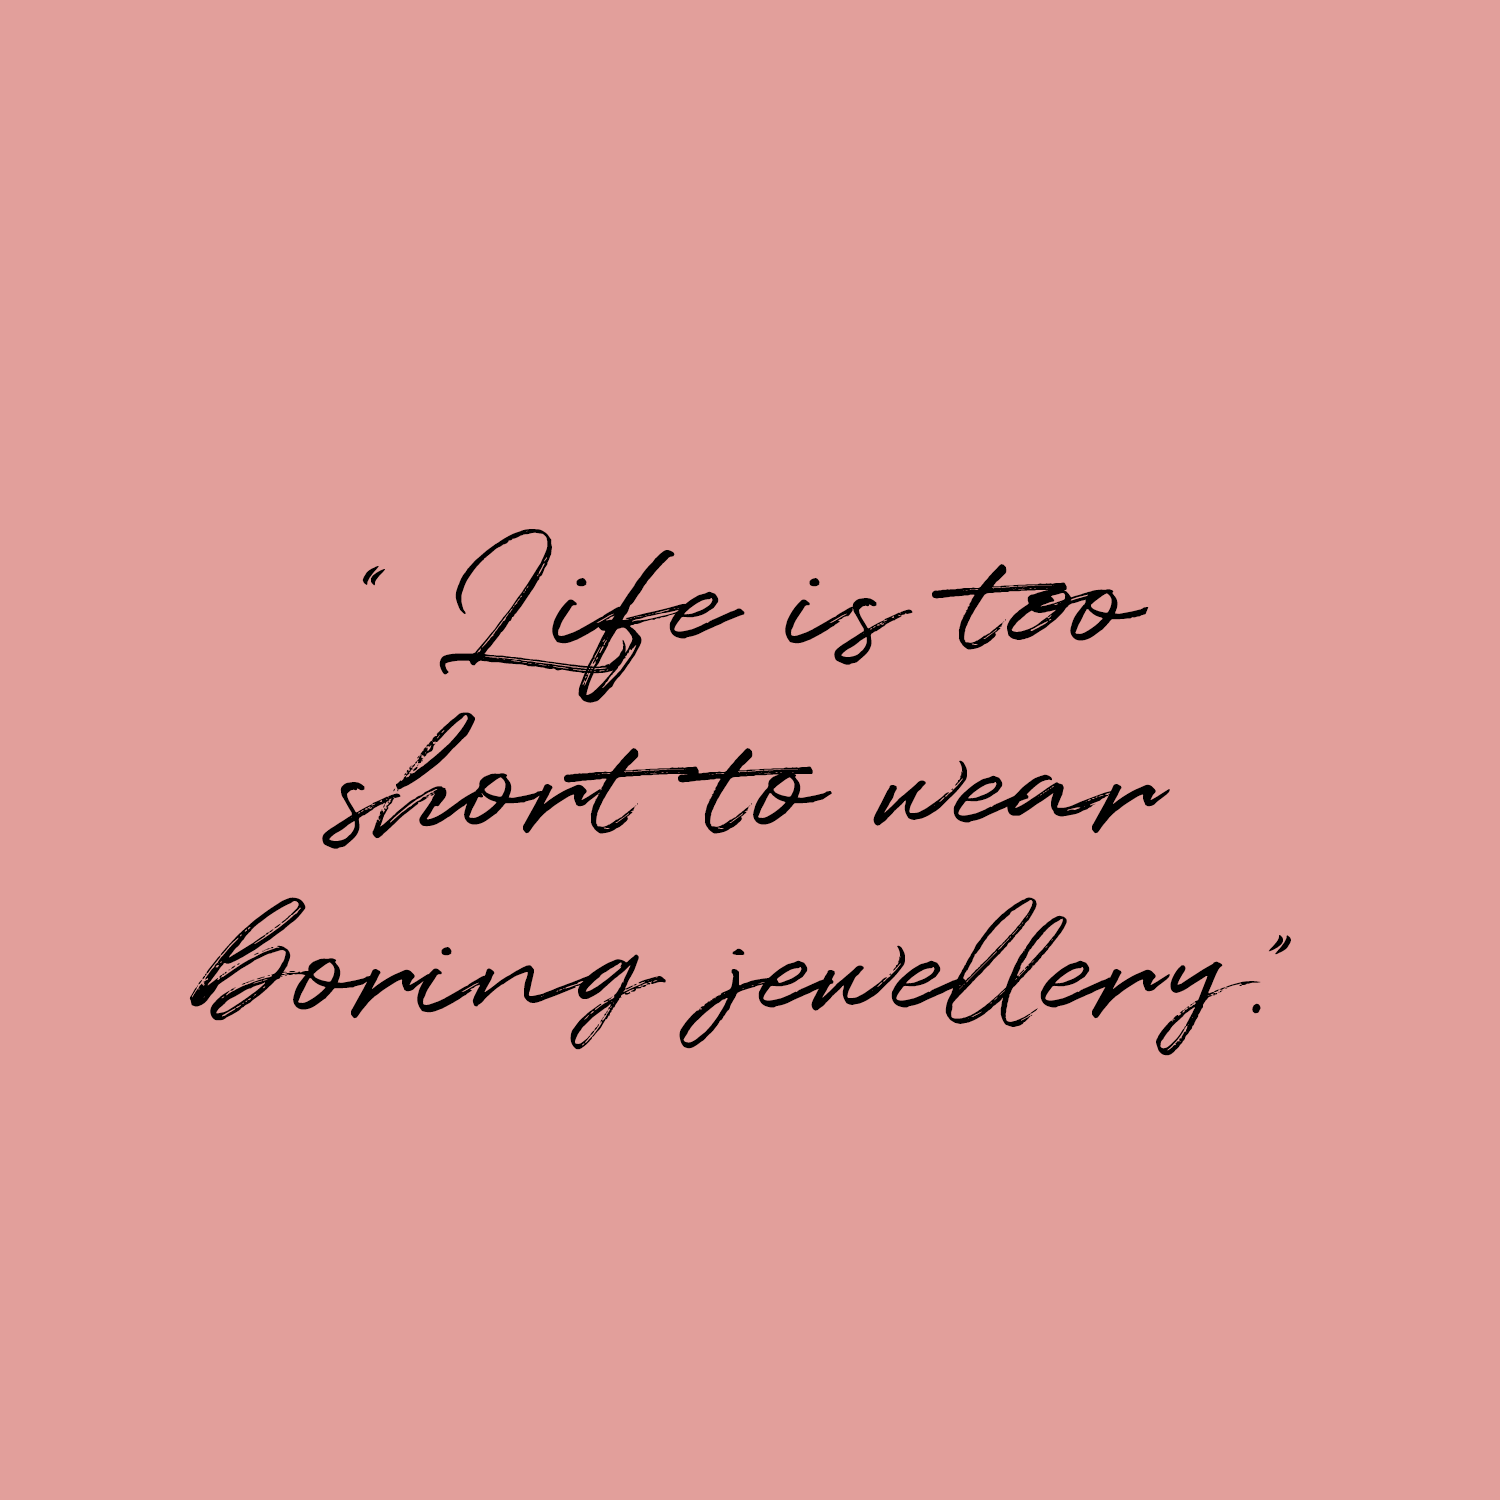 Argento jewellery quote: Life is too short to wear boring jewellery, quote on blush pink background